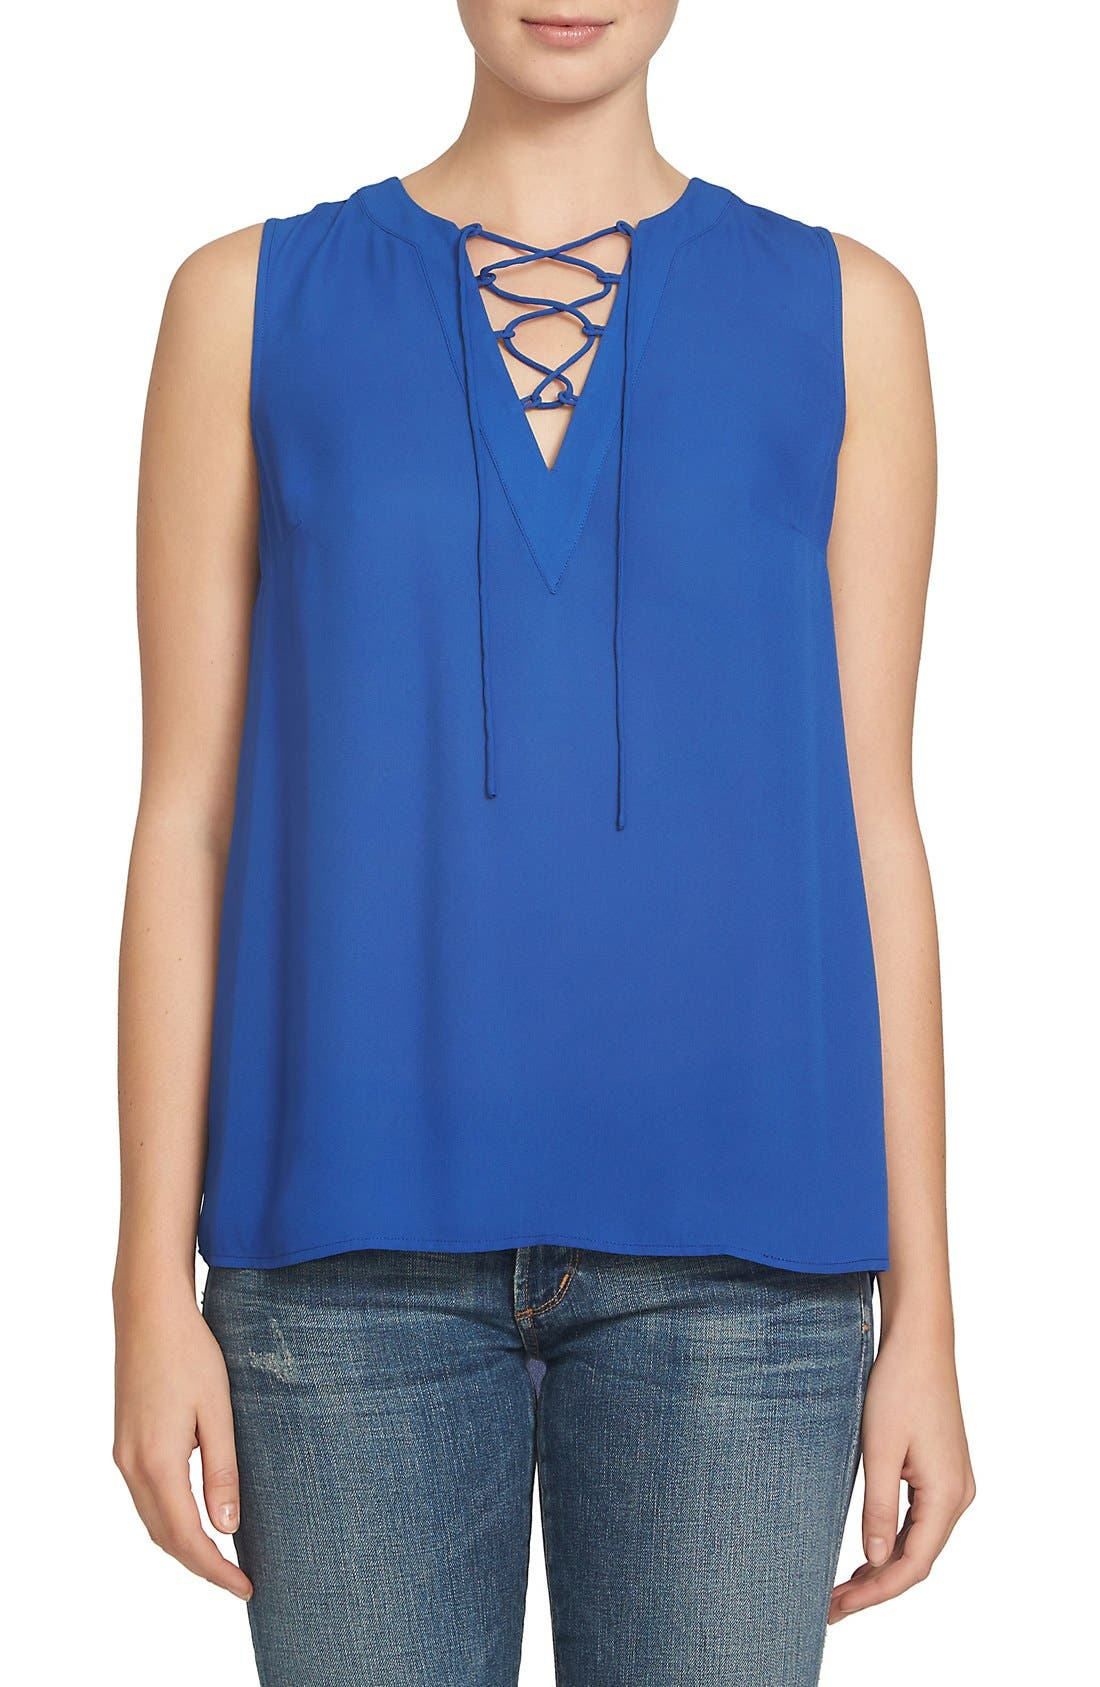 Main Image - 1.STATE Lace-Up Blouse